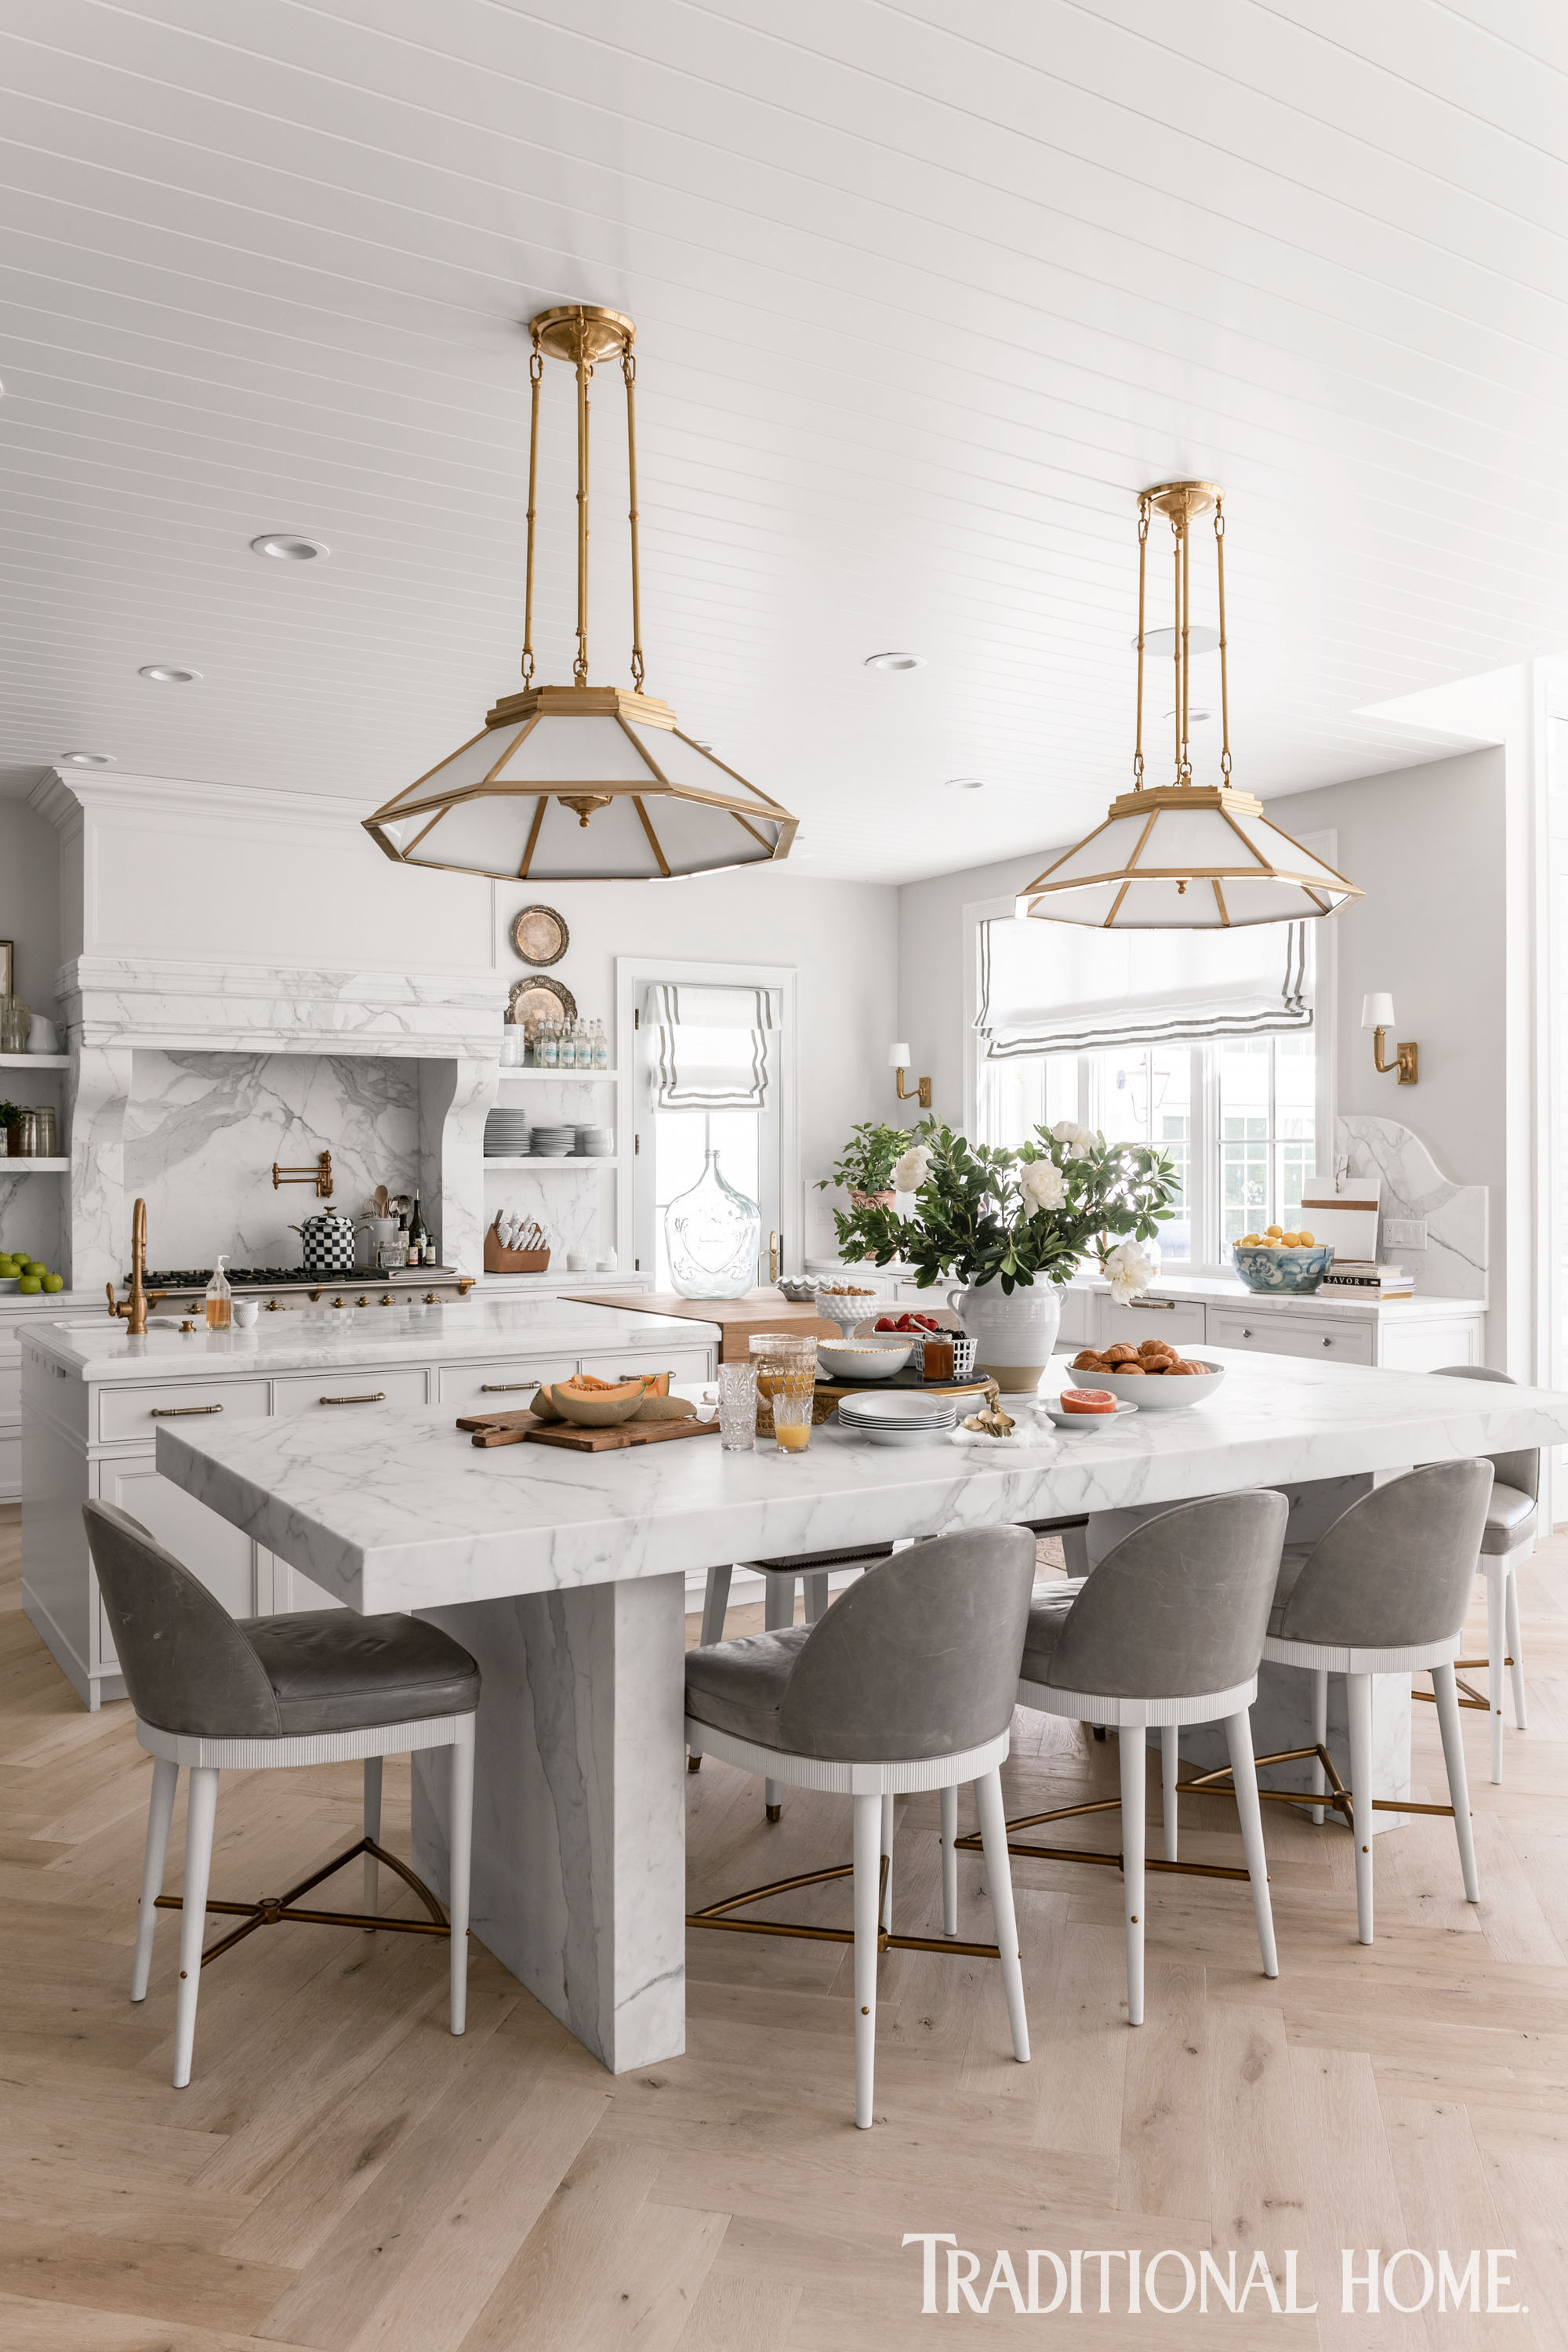 Inside the Home of Rachel Parcell | Traditional Home on elizabeth homes plans, victoria homes plans, jordan homes plans, ryan homes plans,